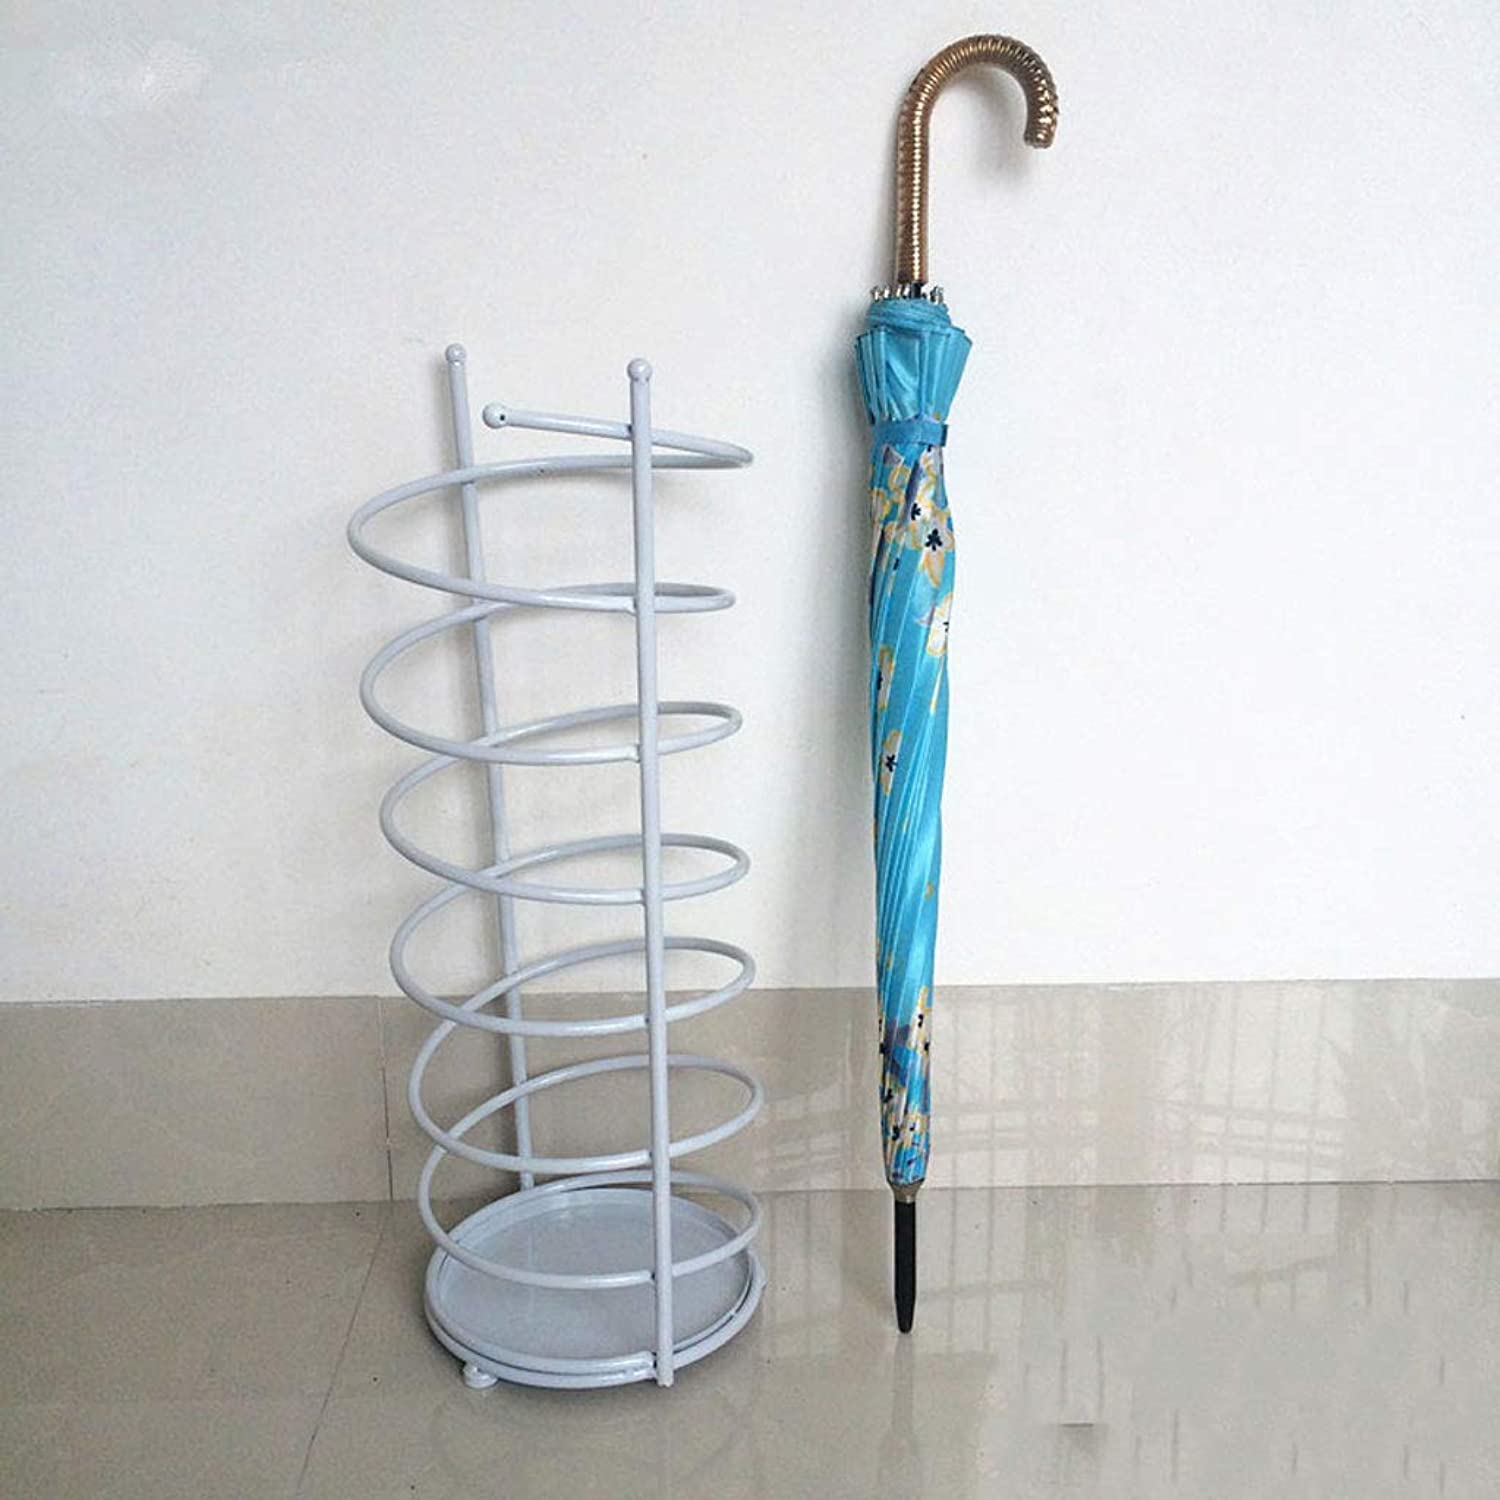 GAIXIA Creative Wrought Iron Umbrella Stand Umbrella Stand Storage Umbrella Umbrella Stand Hotel Lobby European Household Umbrella Stand 20  61cm 24  61cm 28  61cm Umbrella Stand (Size   S)